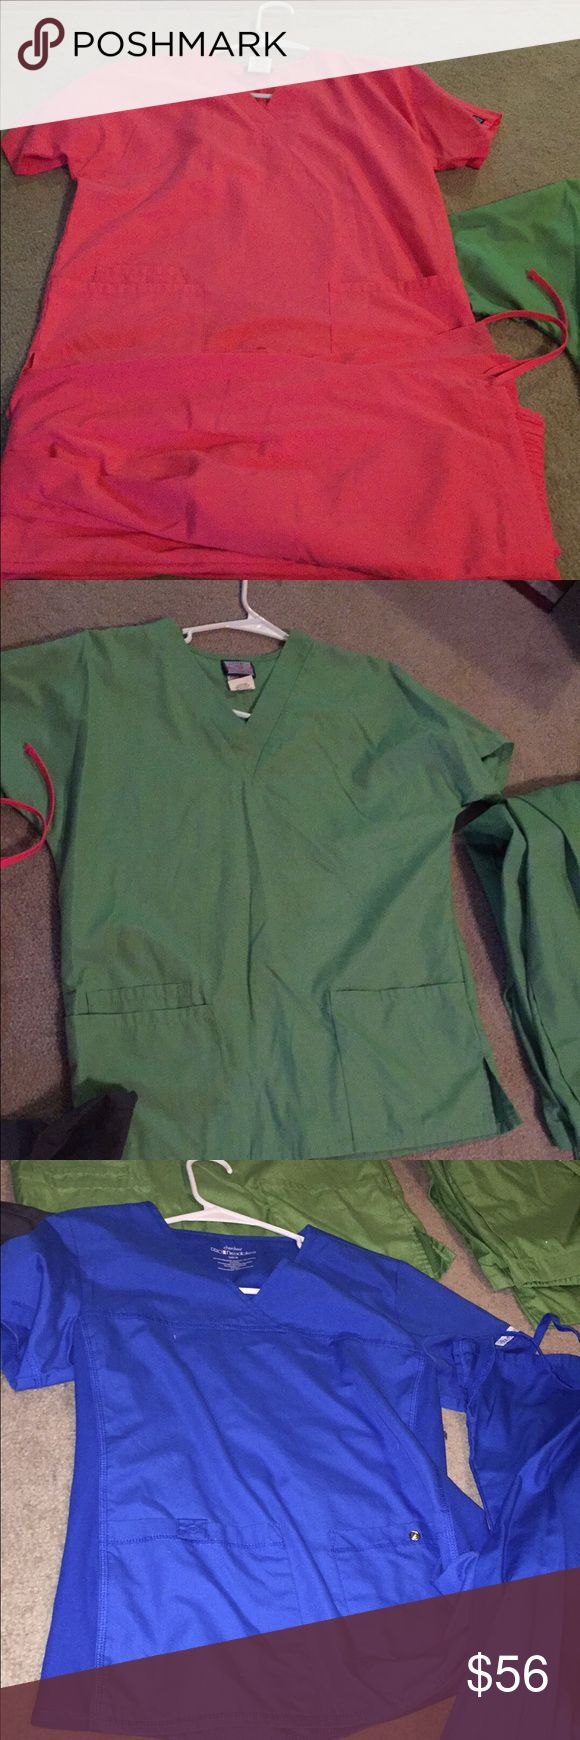 4 pairs of Cherokee scrubs! Like new! I have 4 pairs of CHEROKEE scrubs for sale! Pink, green, gray, and blue! They each come With shirt & pants. The shirts are size XXS and pants size XS except for the Blue the shirt is size XS and pants XS! Marked as VS so I get more Views!!!! Victoria's Secret Other